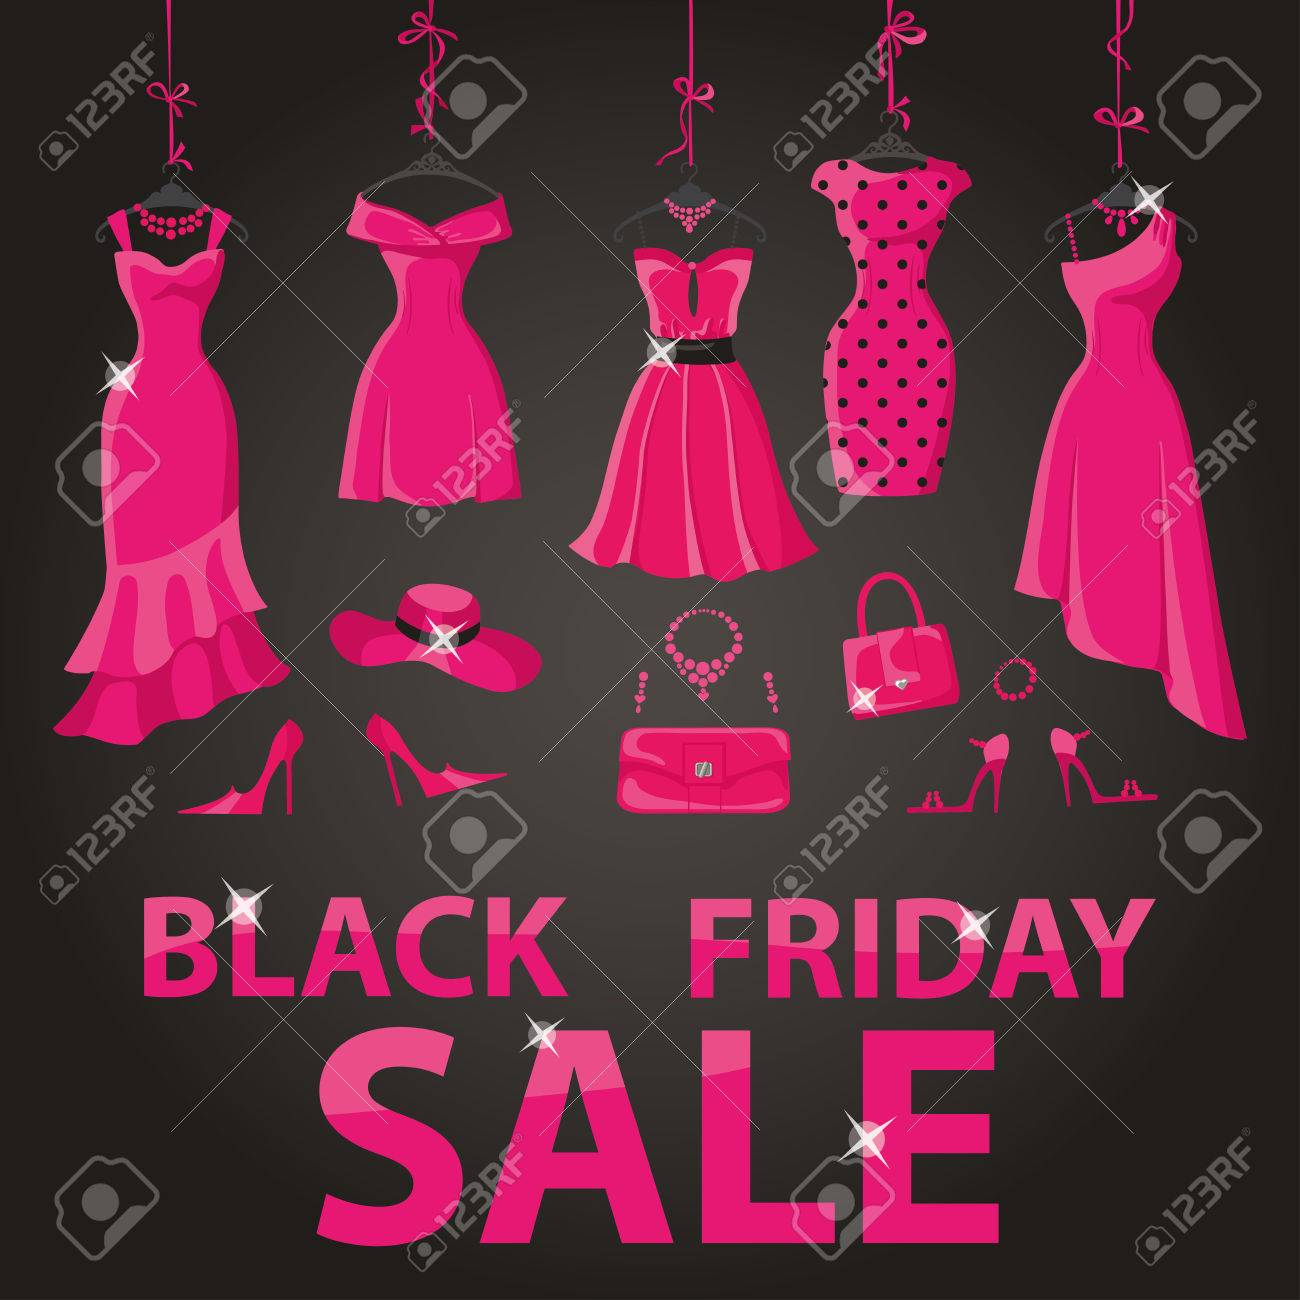 f37a2811cd00 Black friday Big Sale.Pink party dresses hanging on the ribbon with  accessories and title